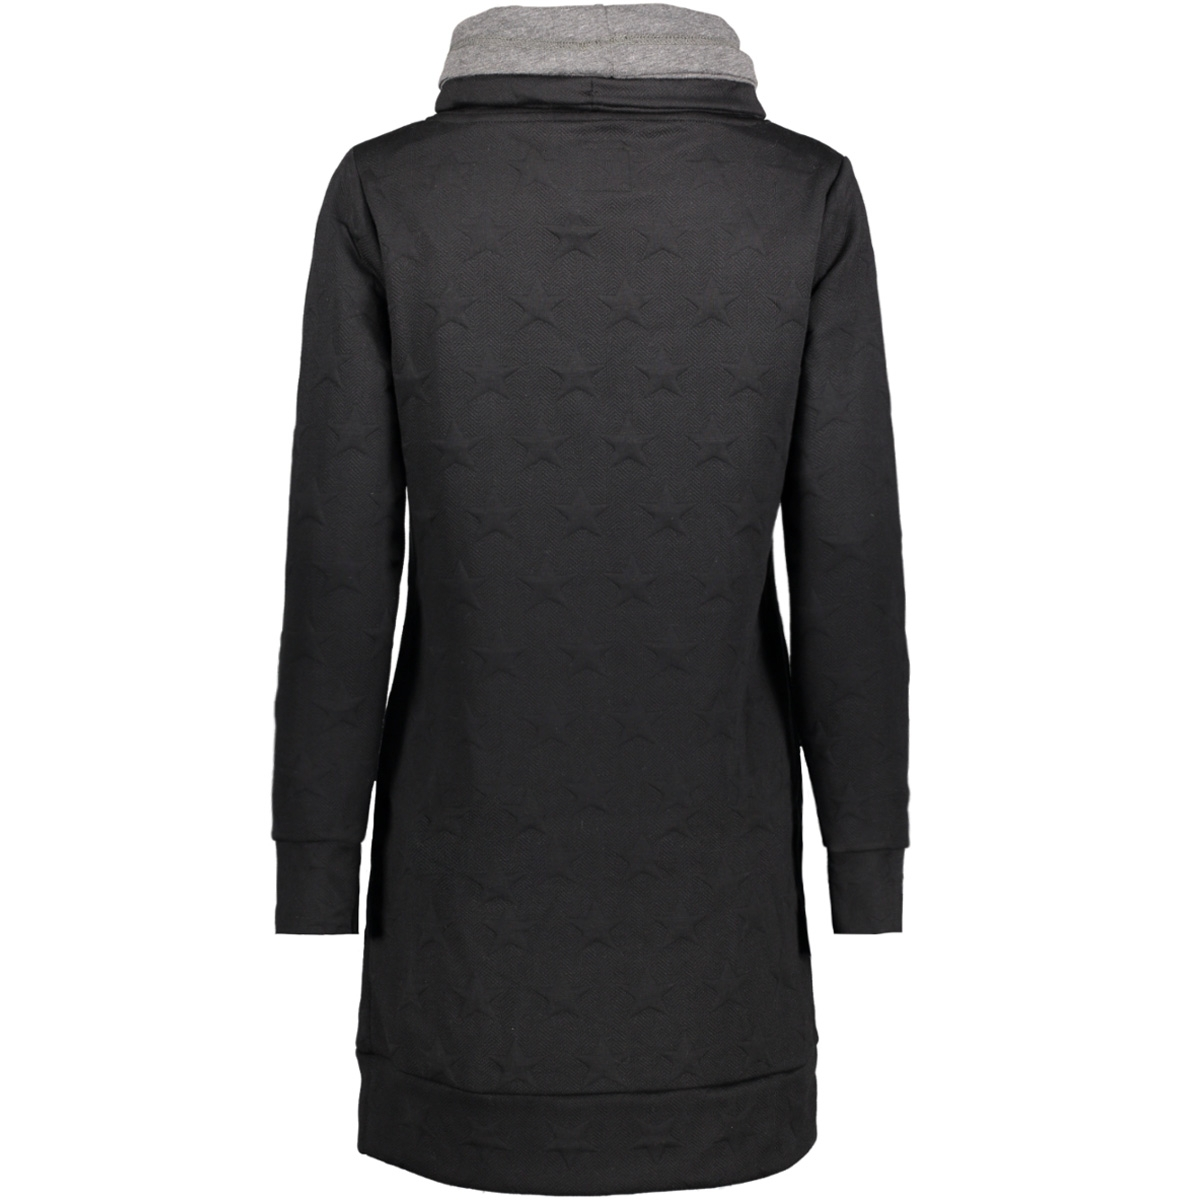 onlserena bette l/s jacquard swt 15144641 only sweater black